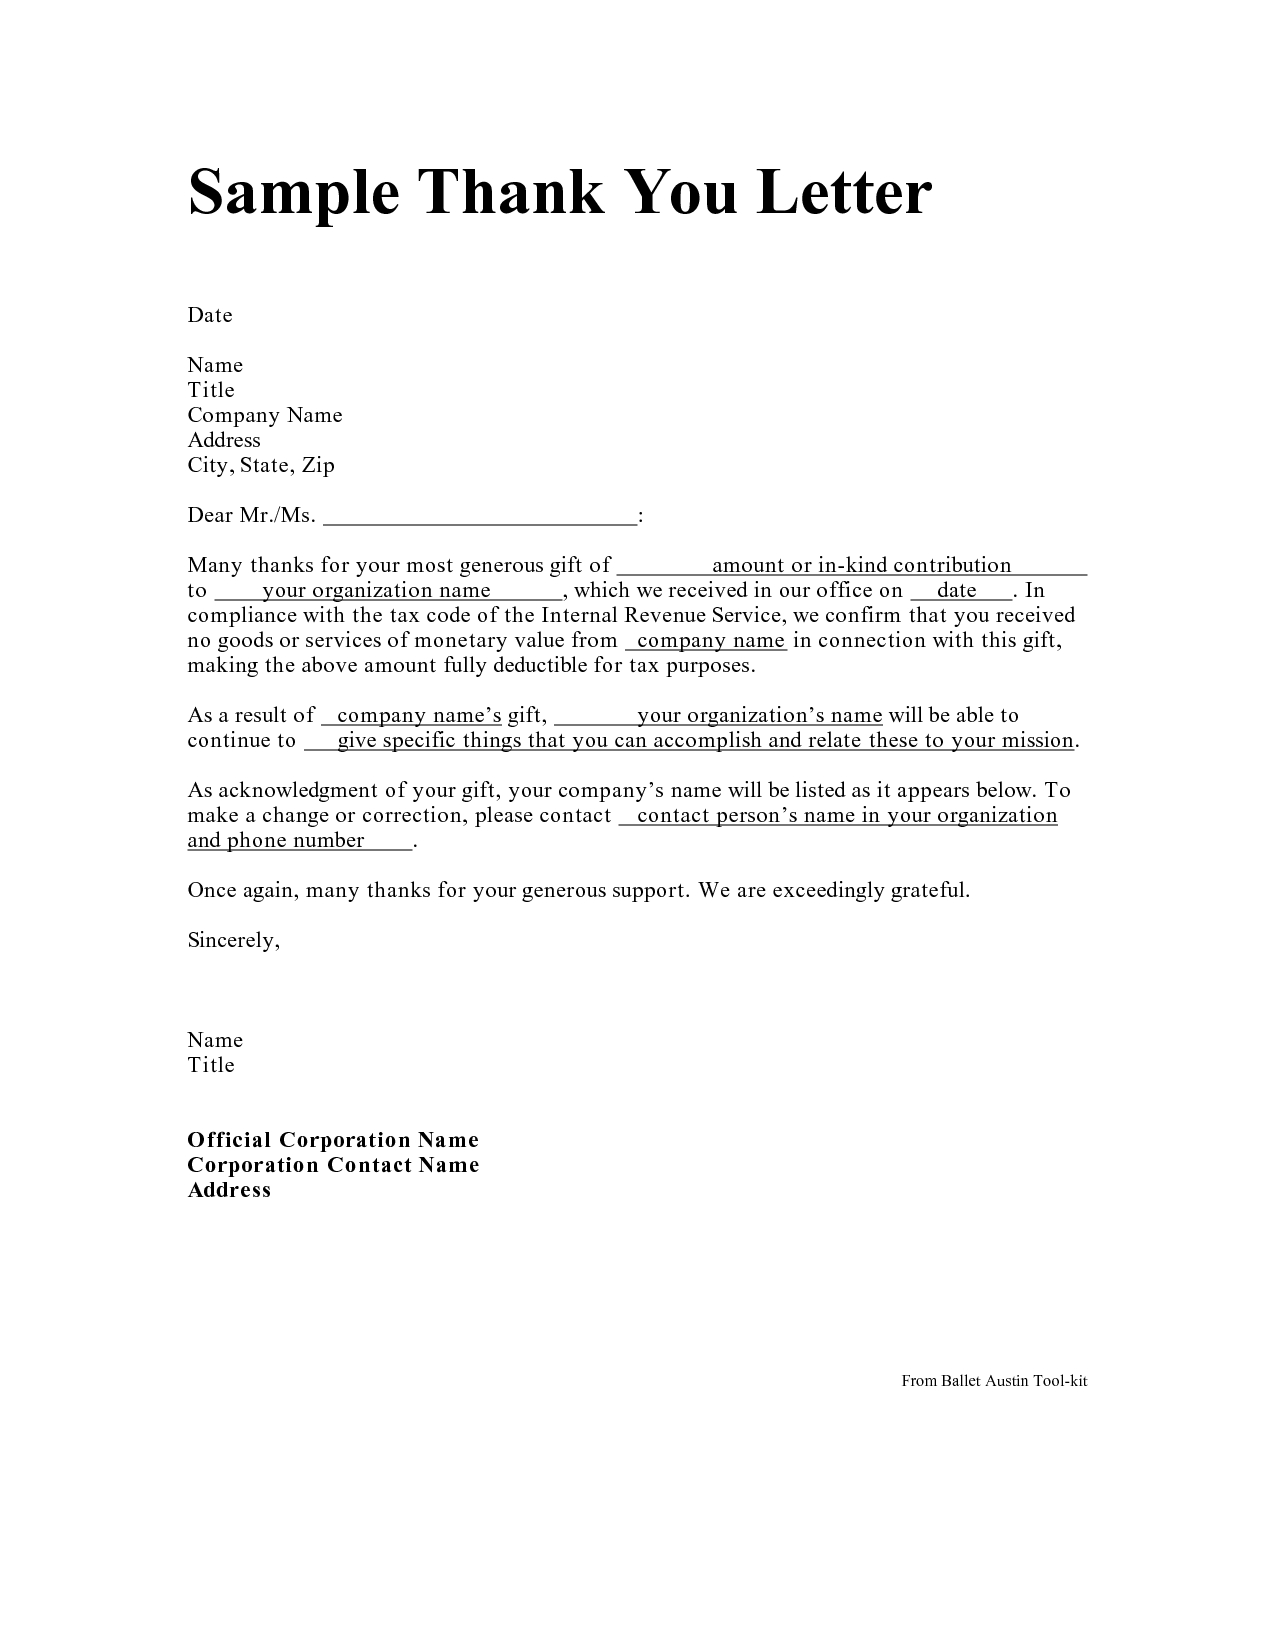 Final Notice before Legal Action Letter Template Uk - Personal Thank You Letter Personal Thank You Letter Samples